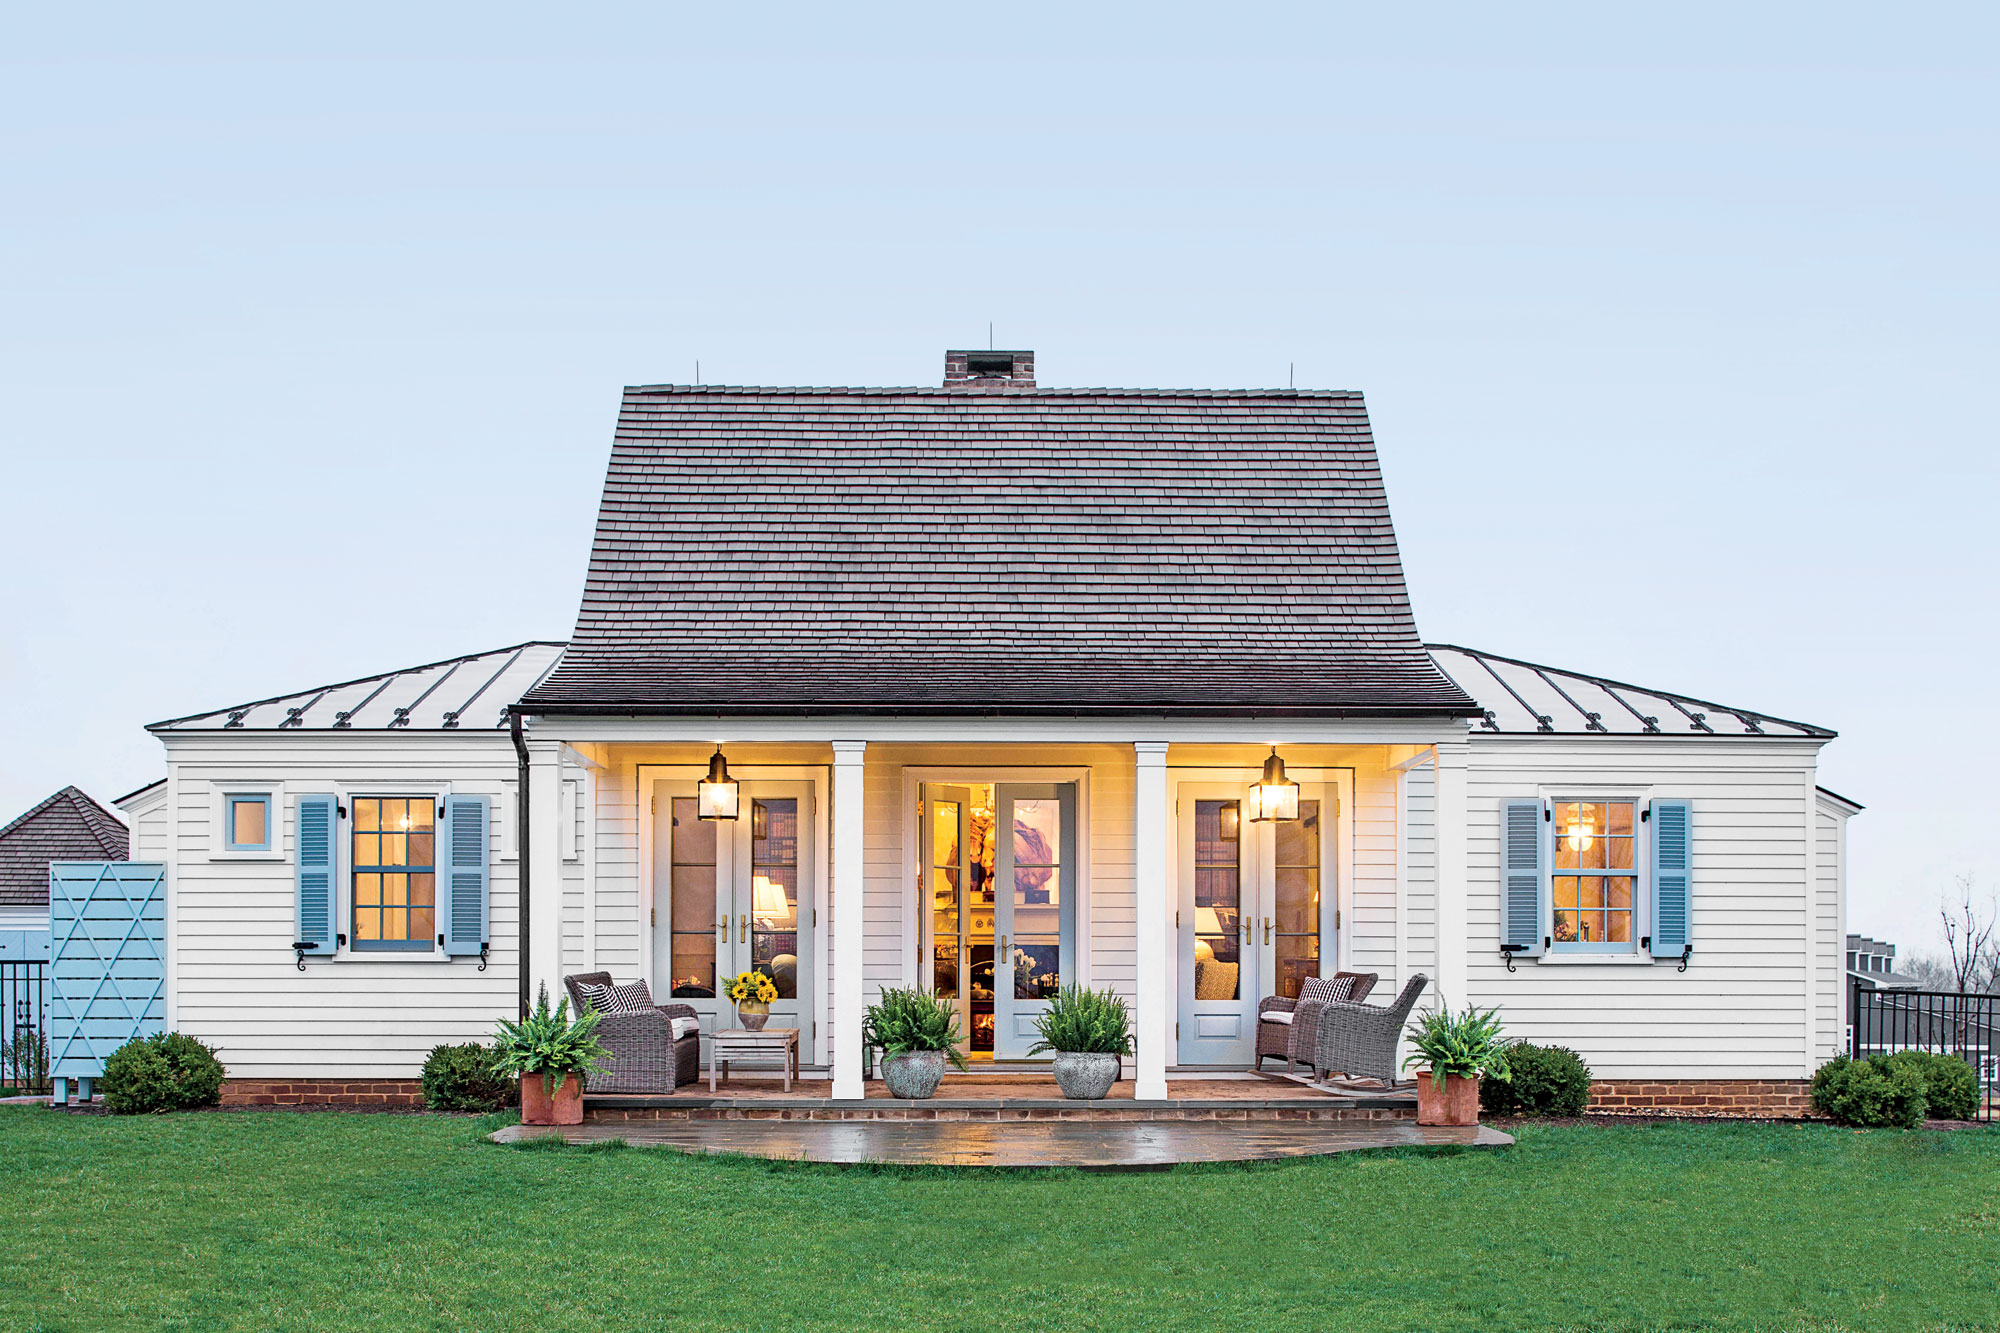 Dream Home Plans 1500 Square Feet Is The Right Size Southern Living